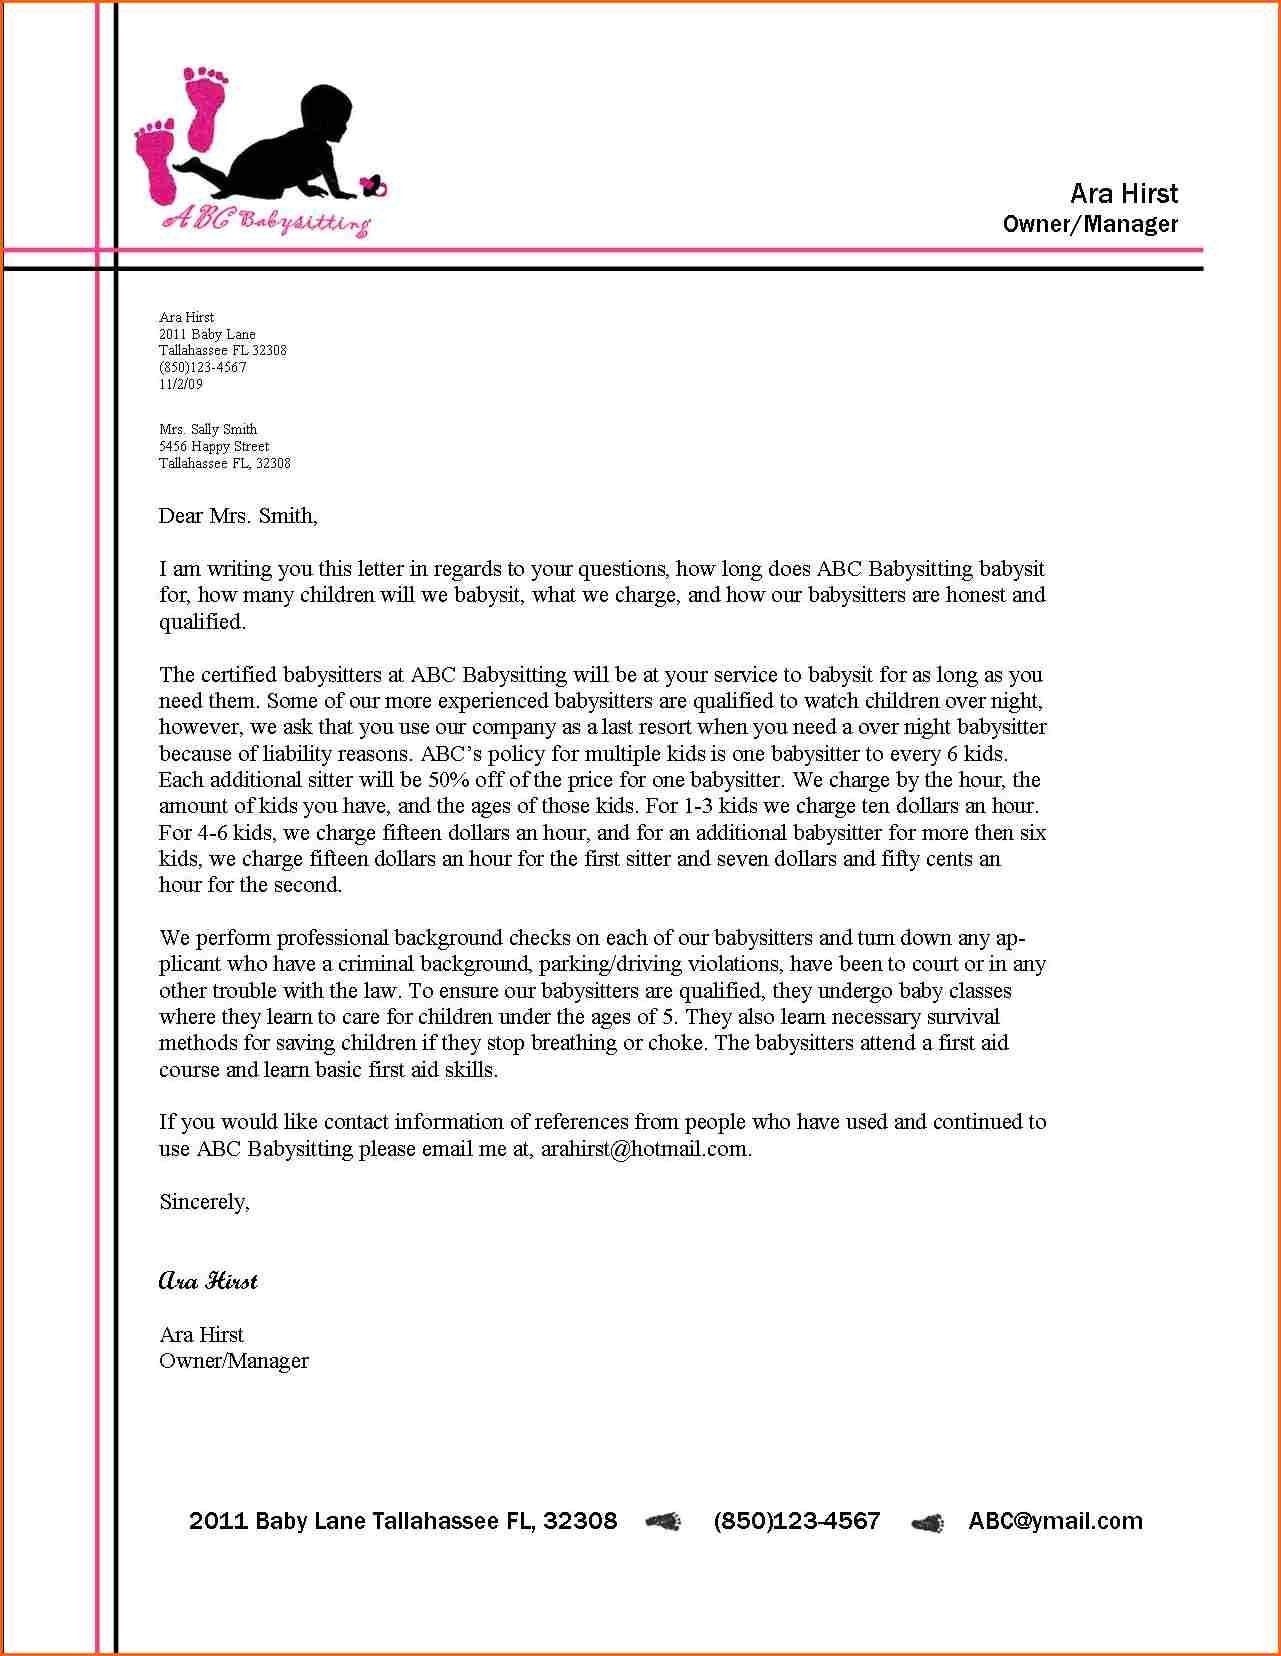 Business Letter Format Letterhead Example Alberta Education Links pertaining to Business Letter Format Without Letterhead 21791